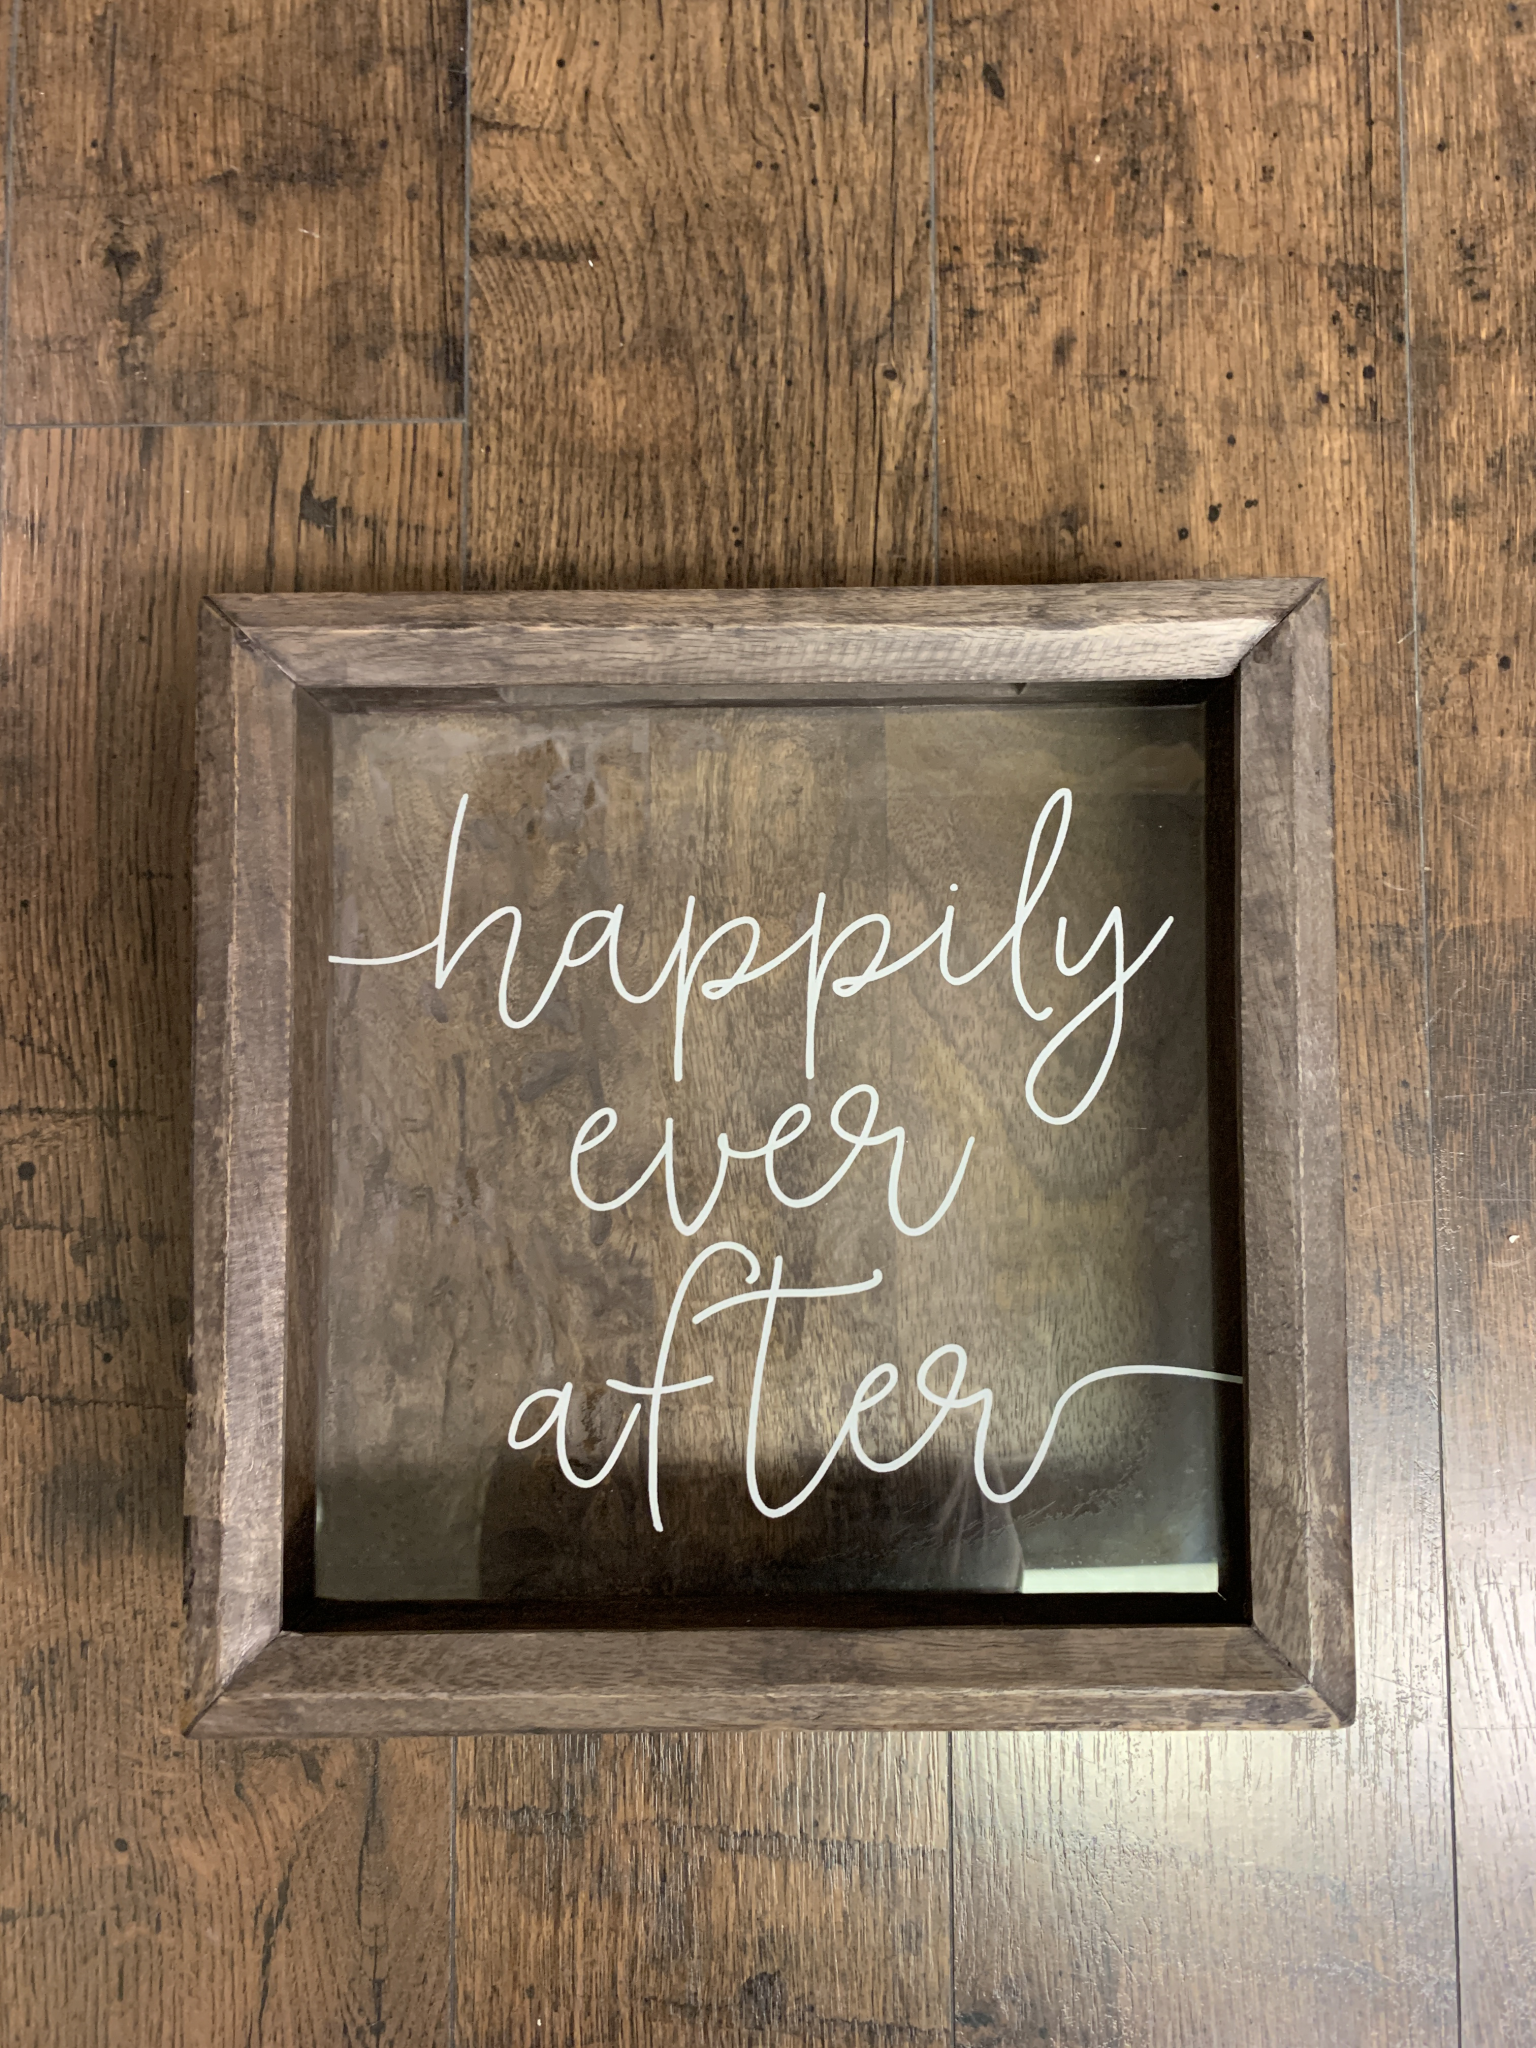 Happily Ever After Keepsake Box 718540435052